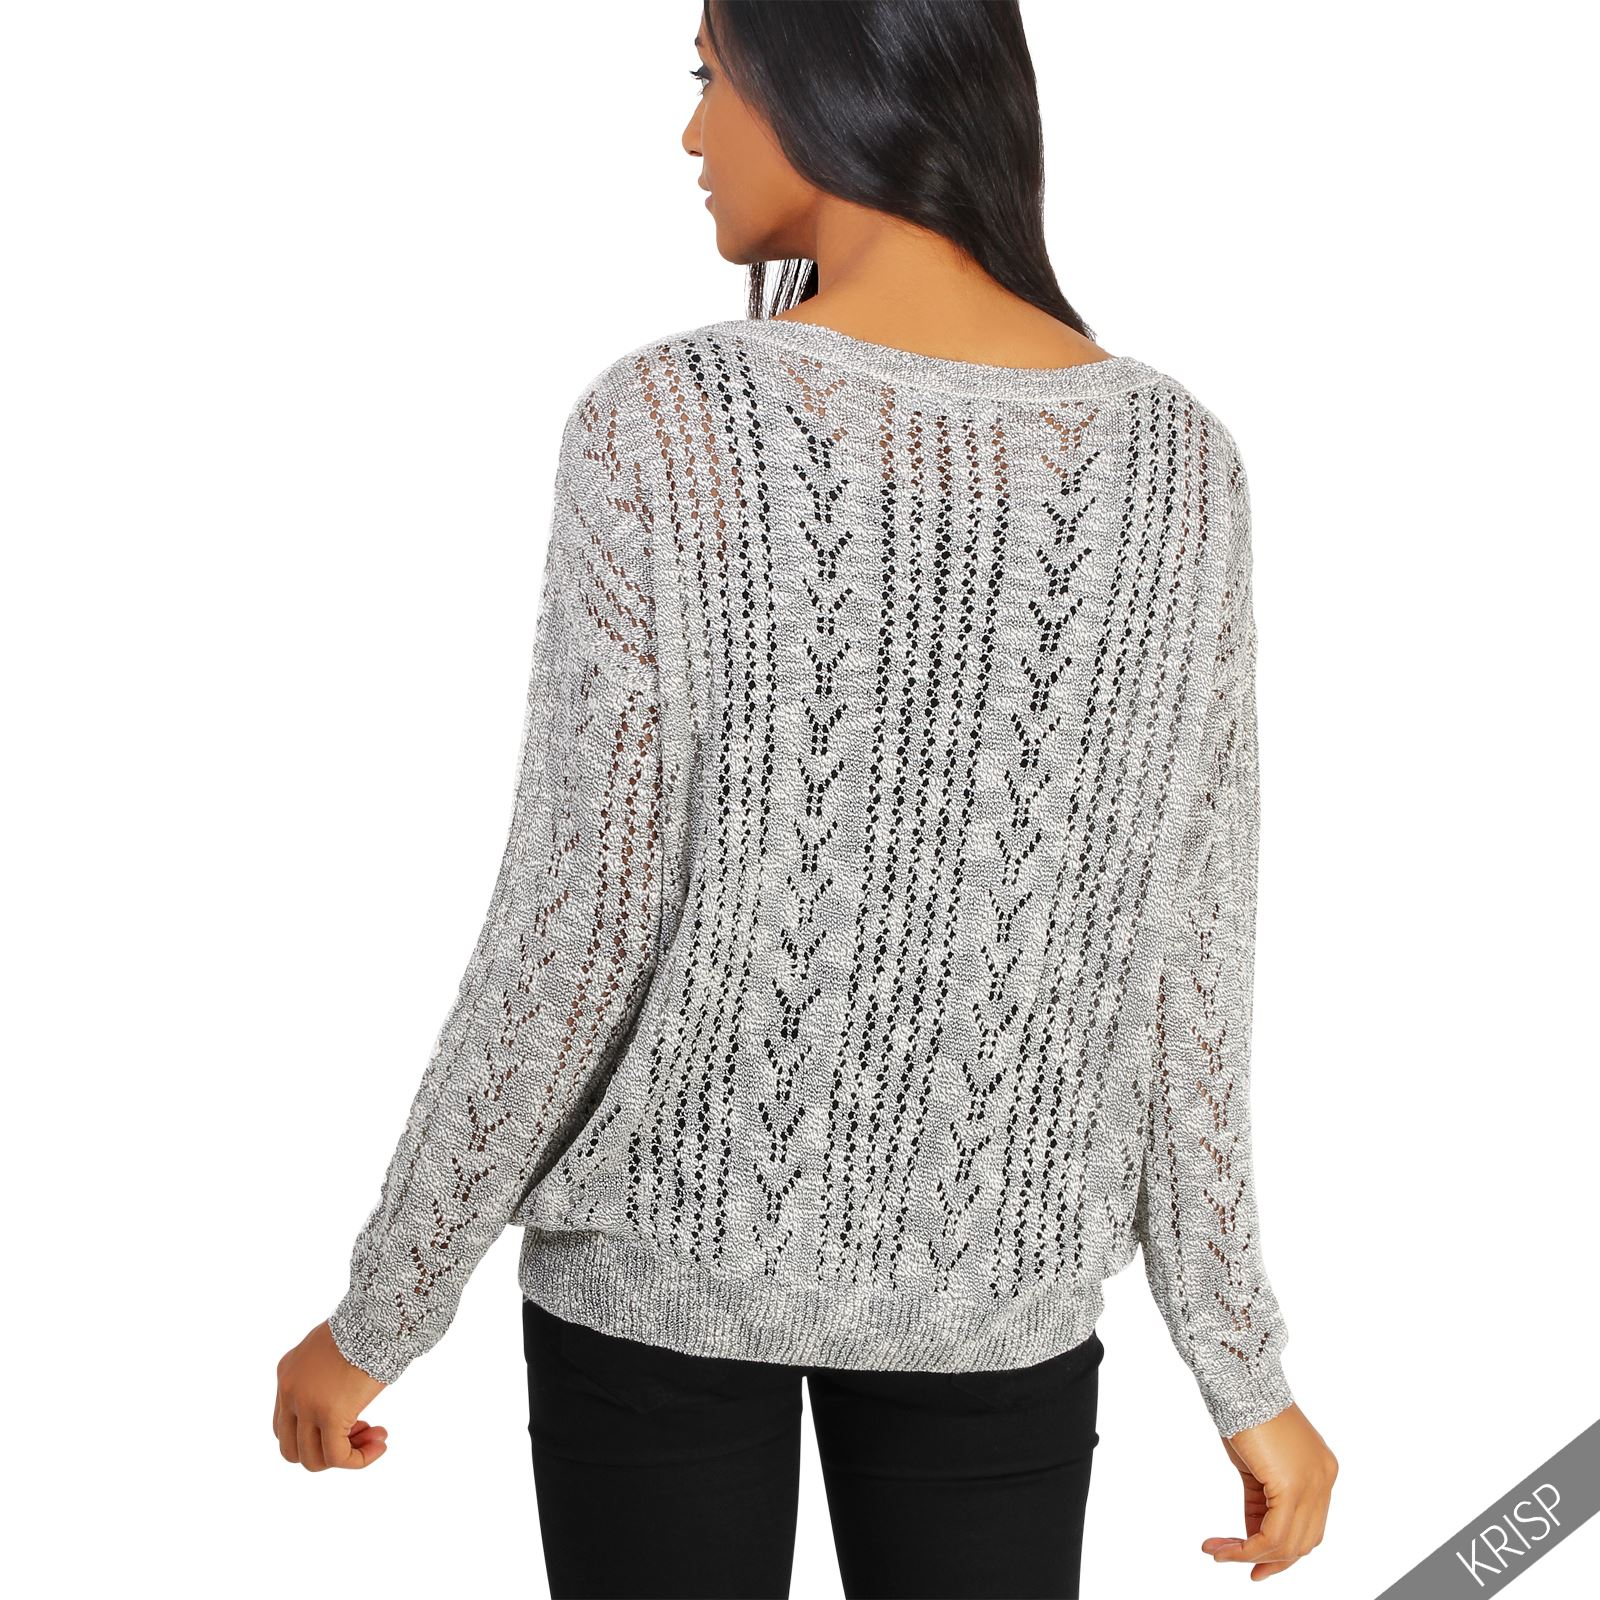 Sweaters + Cardigans Find your favorite Sweater & Cardigan styles at Forever 21! Cozy up in our oversized knits with classic crochet cardigans, ribbed sweater dresses, cocoon cardigans, velvet sweatshirts, chenille tops, open-knit ponchos & more!